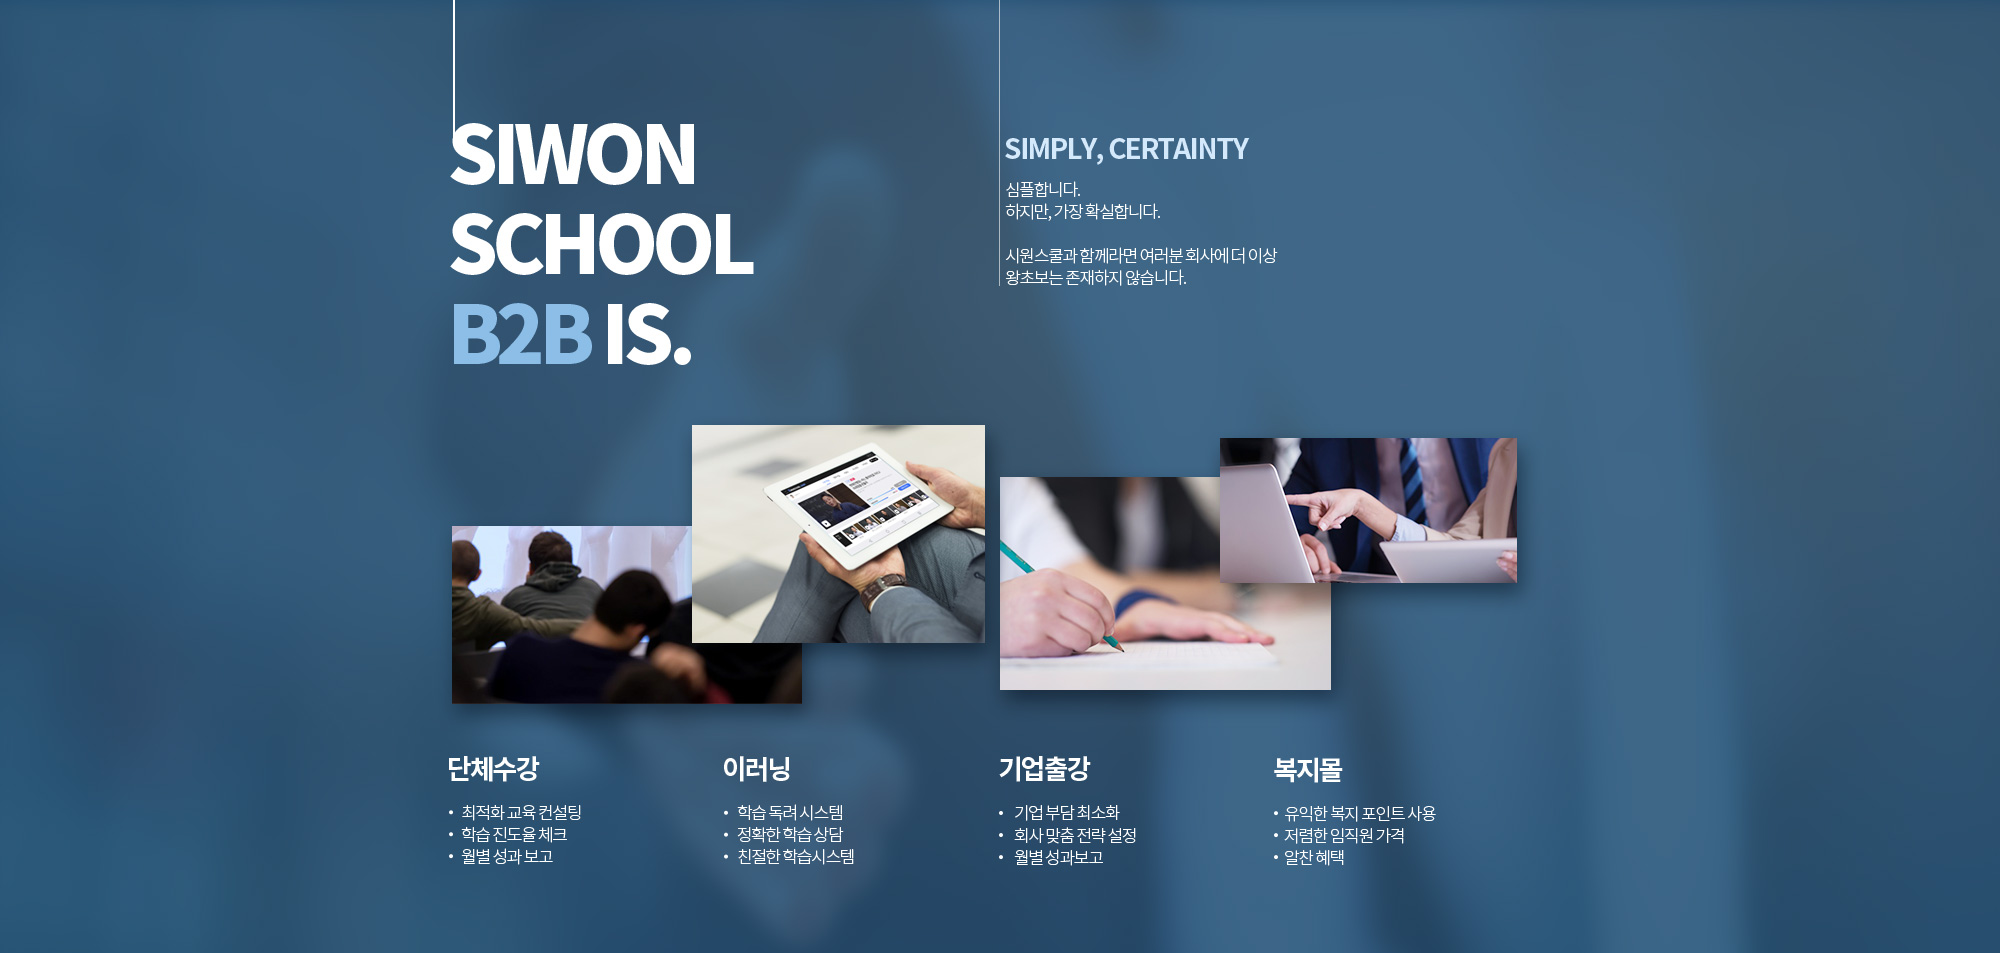 SIWON SCHOOL B2B IS.